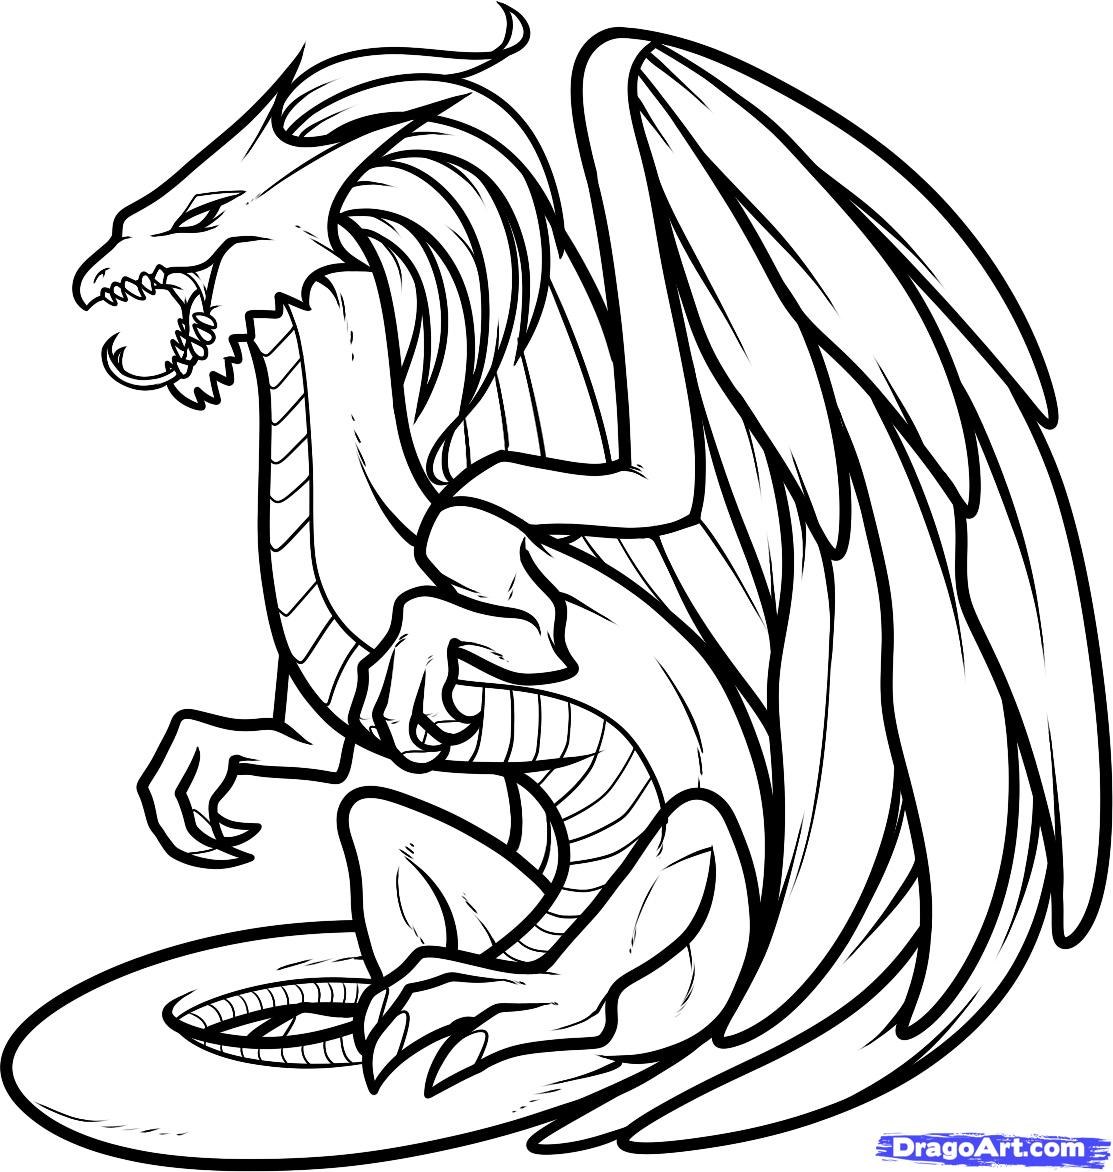 dragon coloring page dragon coloring pages to download and print for free dragon coloring page